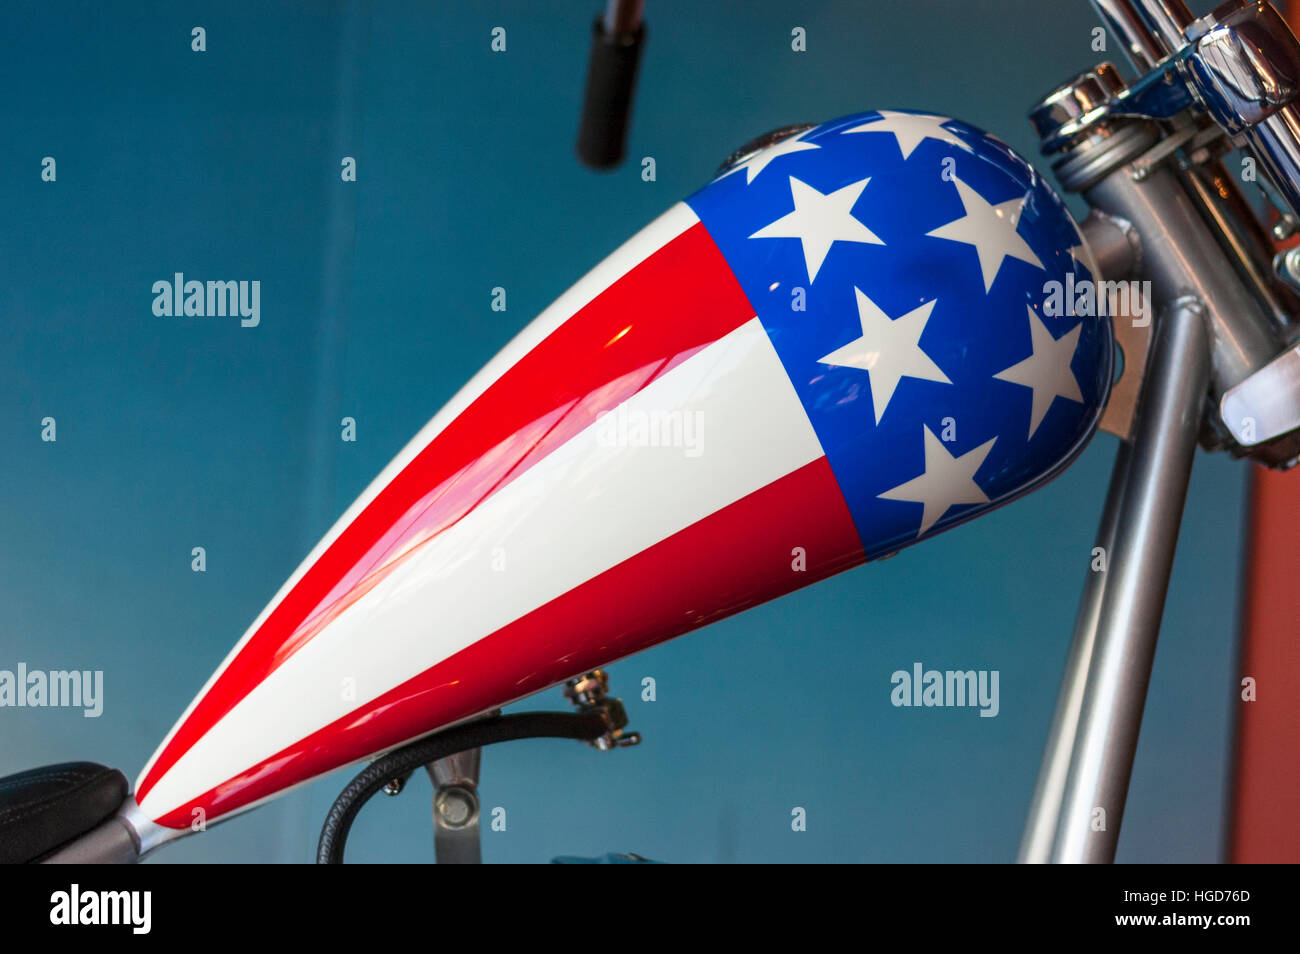 Customized Easy Rider motorbike Harley-Davidson motorcycle fuel tank painted with the colors of the American flag. - Stock Image